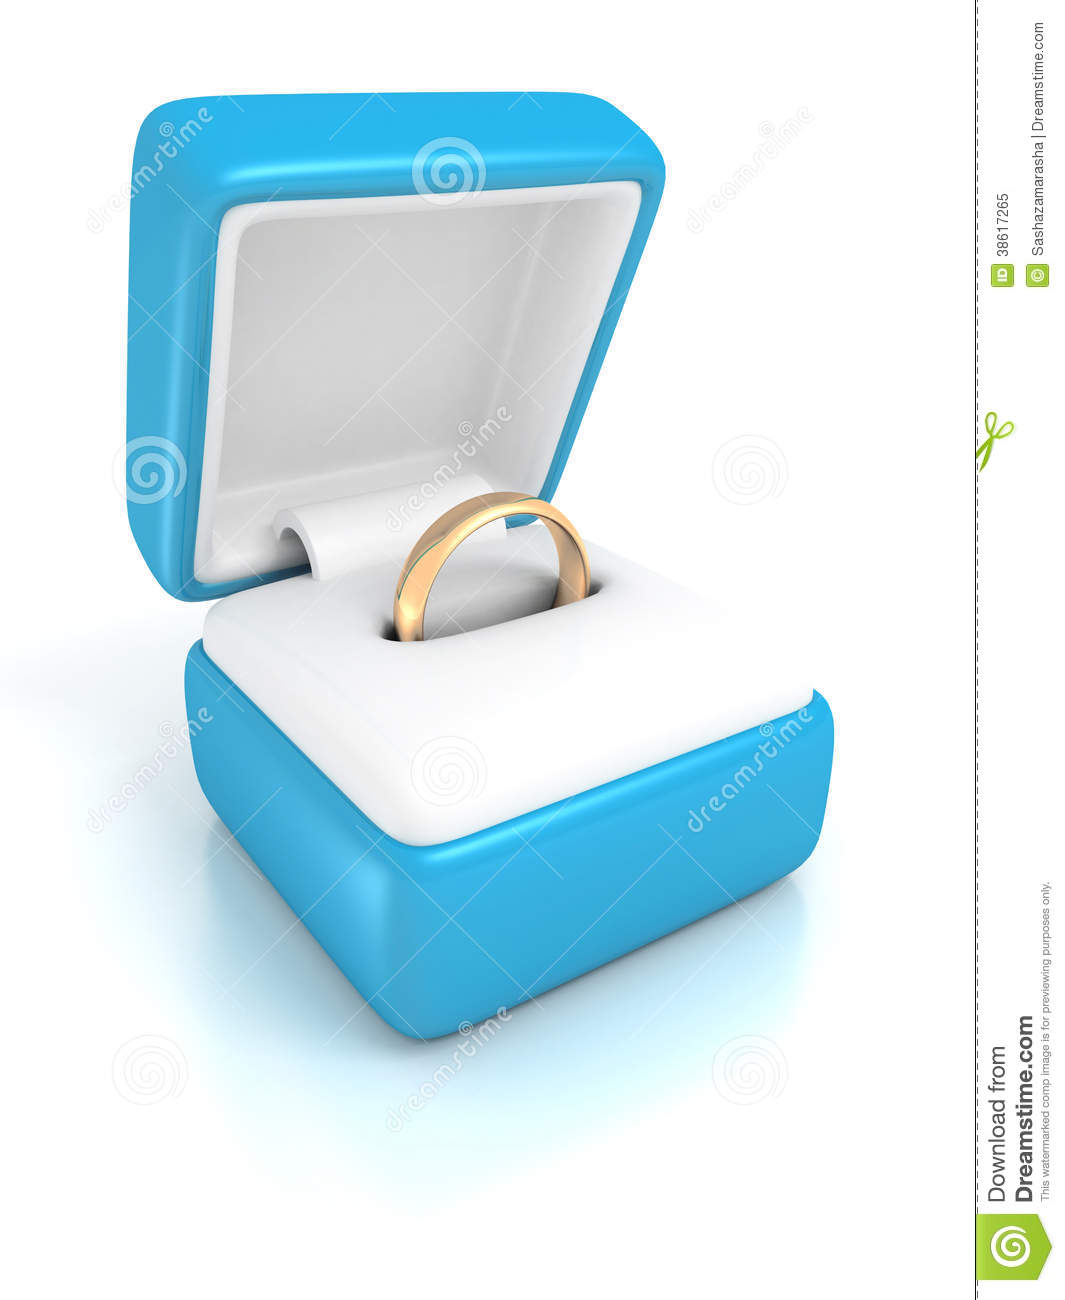 golden wedding ring in a blue jewelry box royalty free